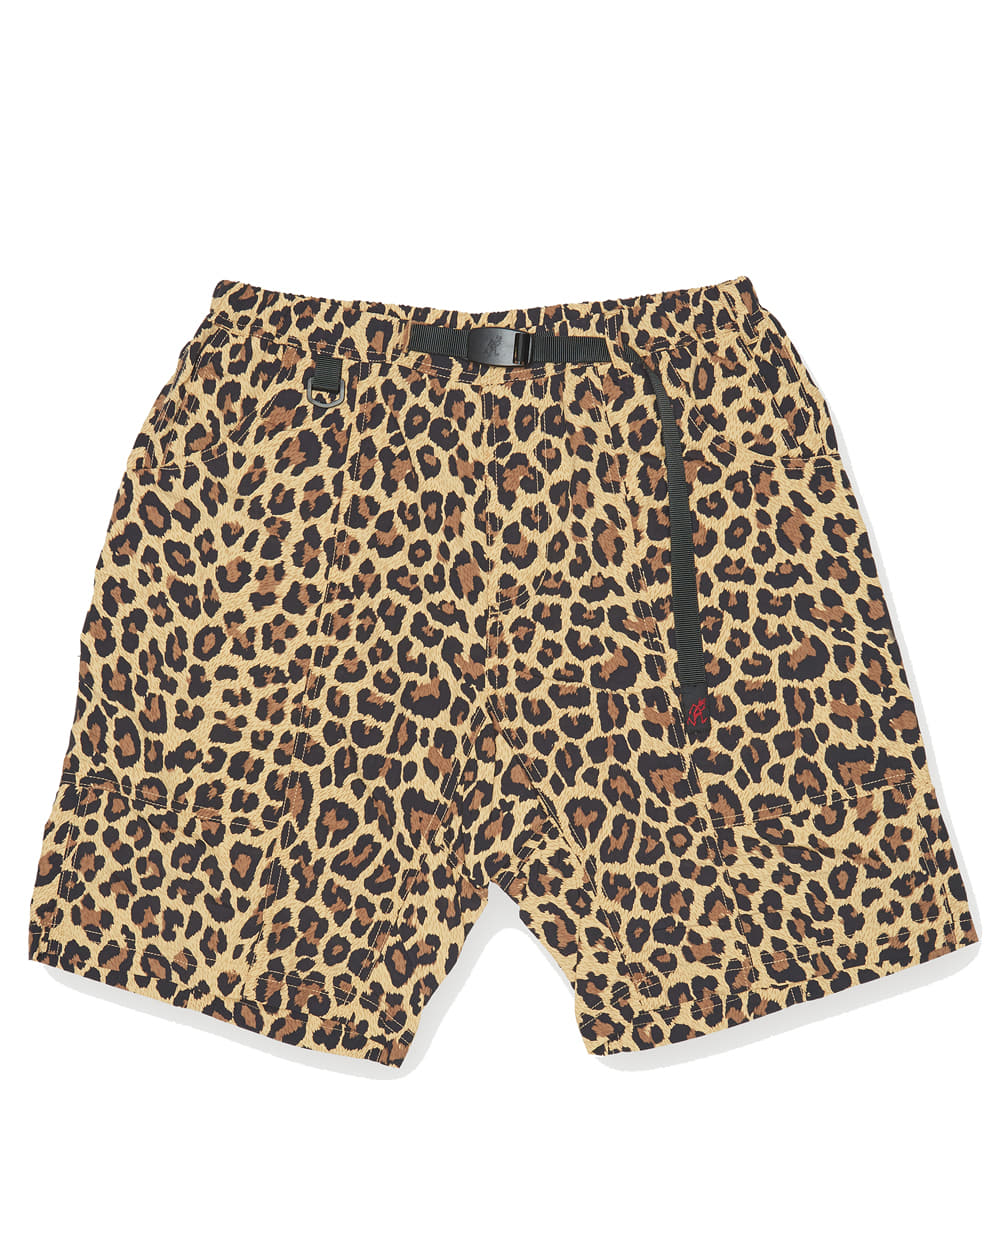 그라미치 SHELL GEAR SHORTS (Leopard)